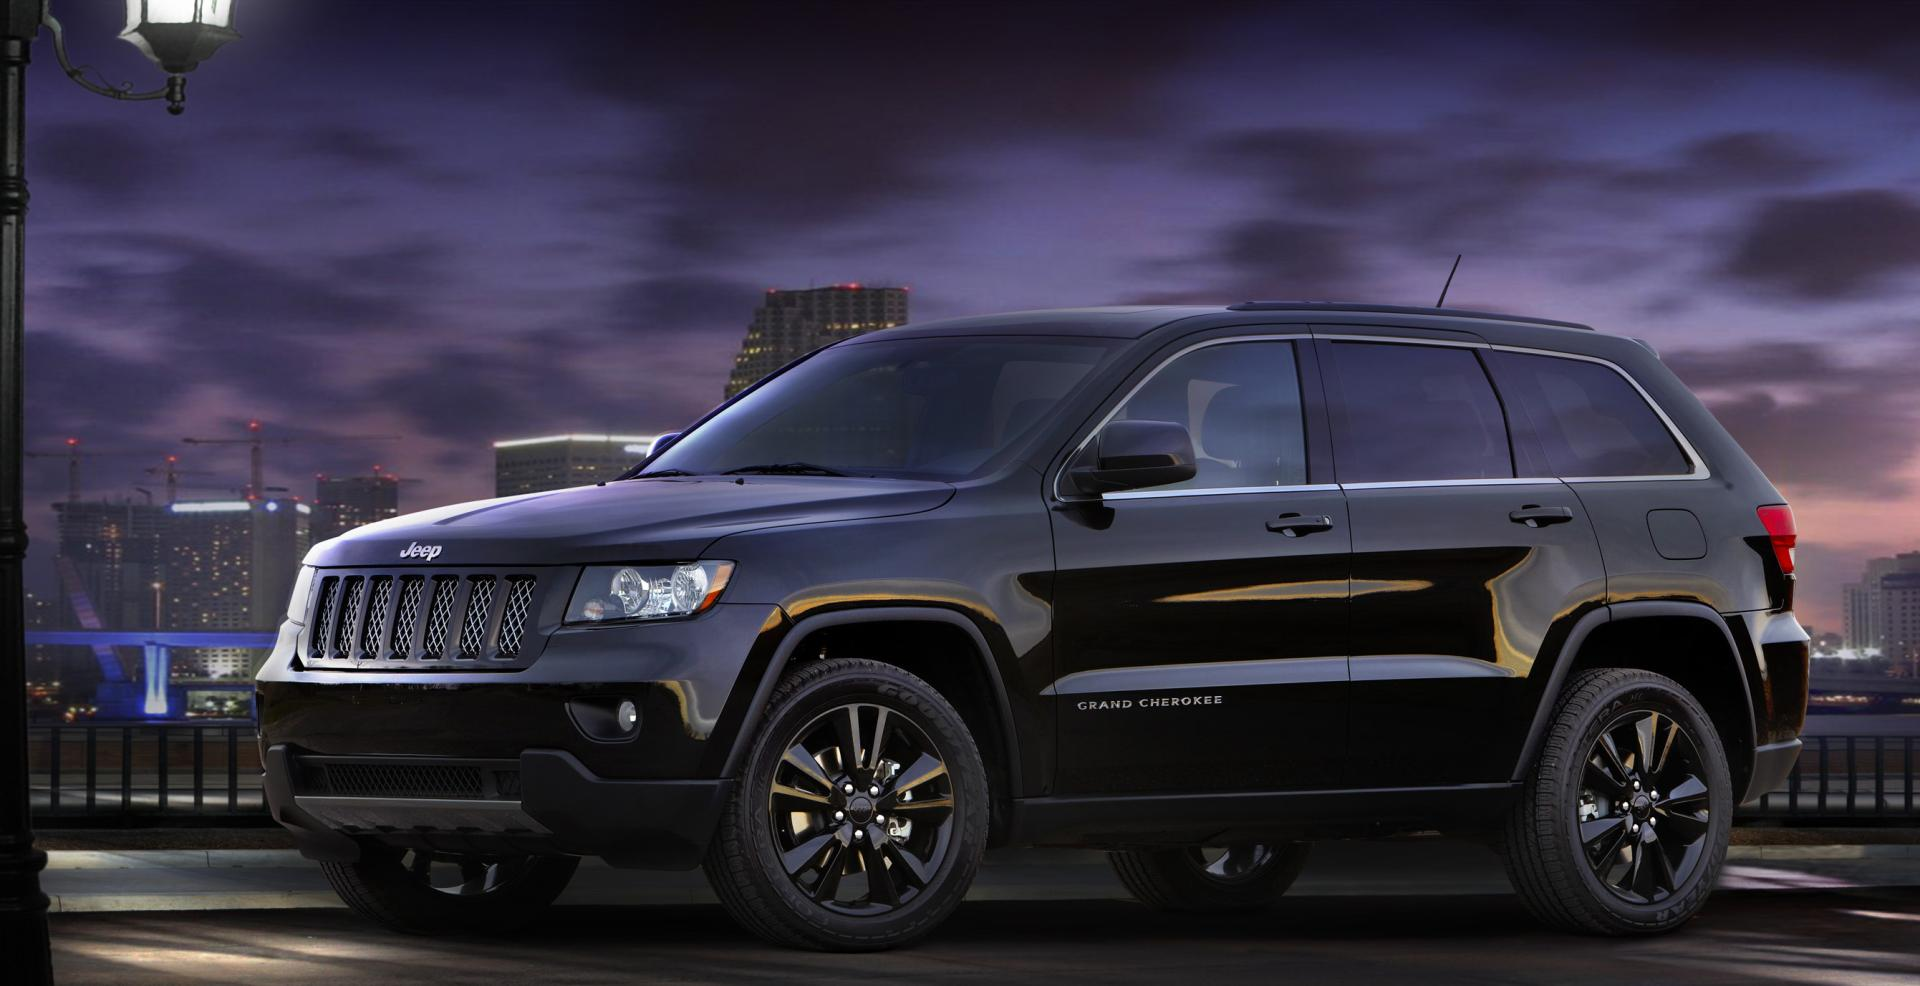 2012 jeep grand cherokee production-intent concept pictures, news